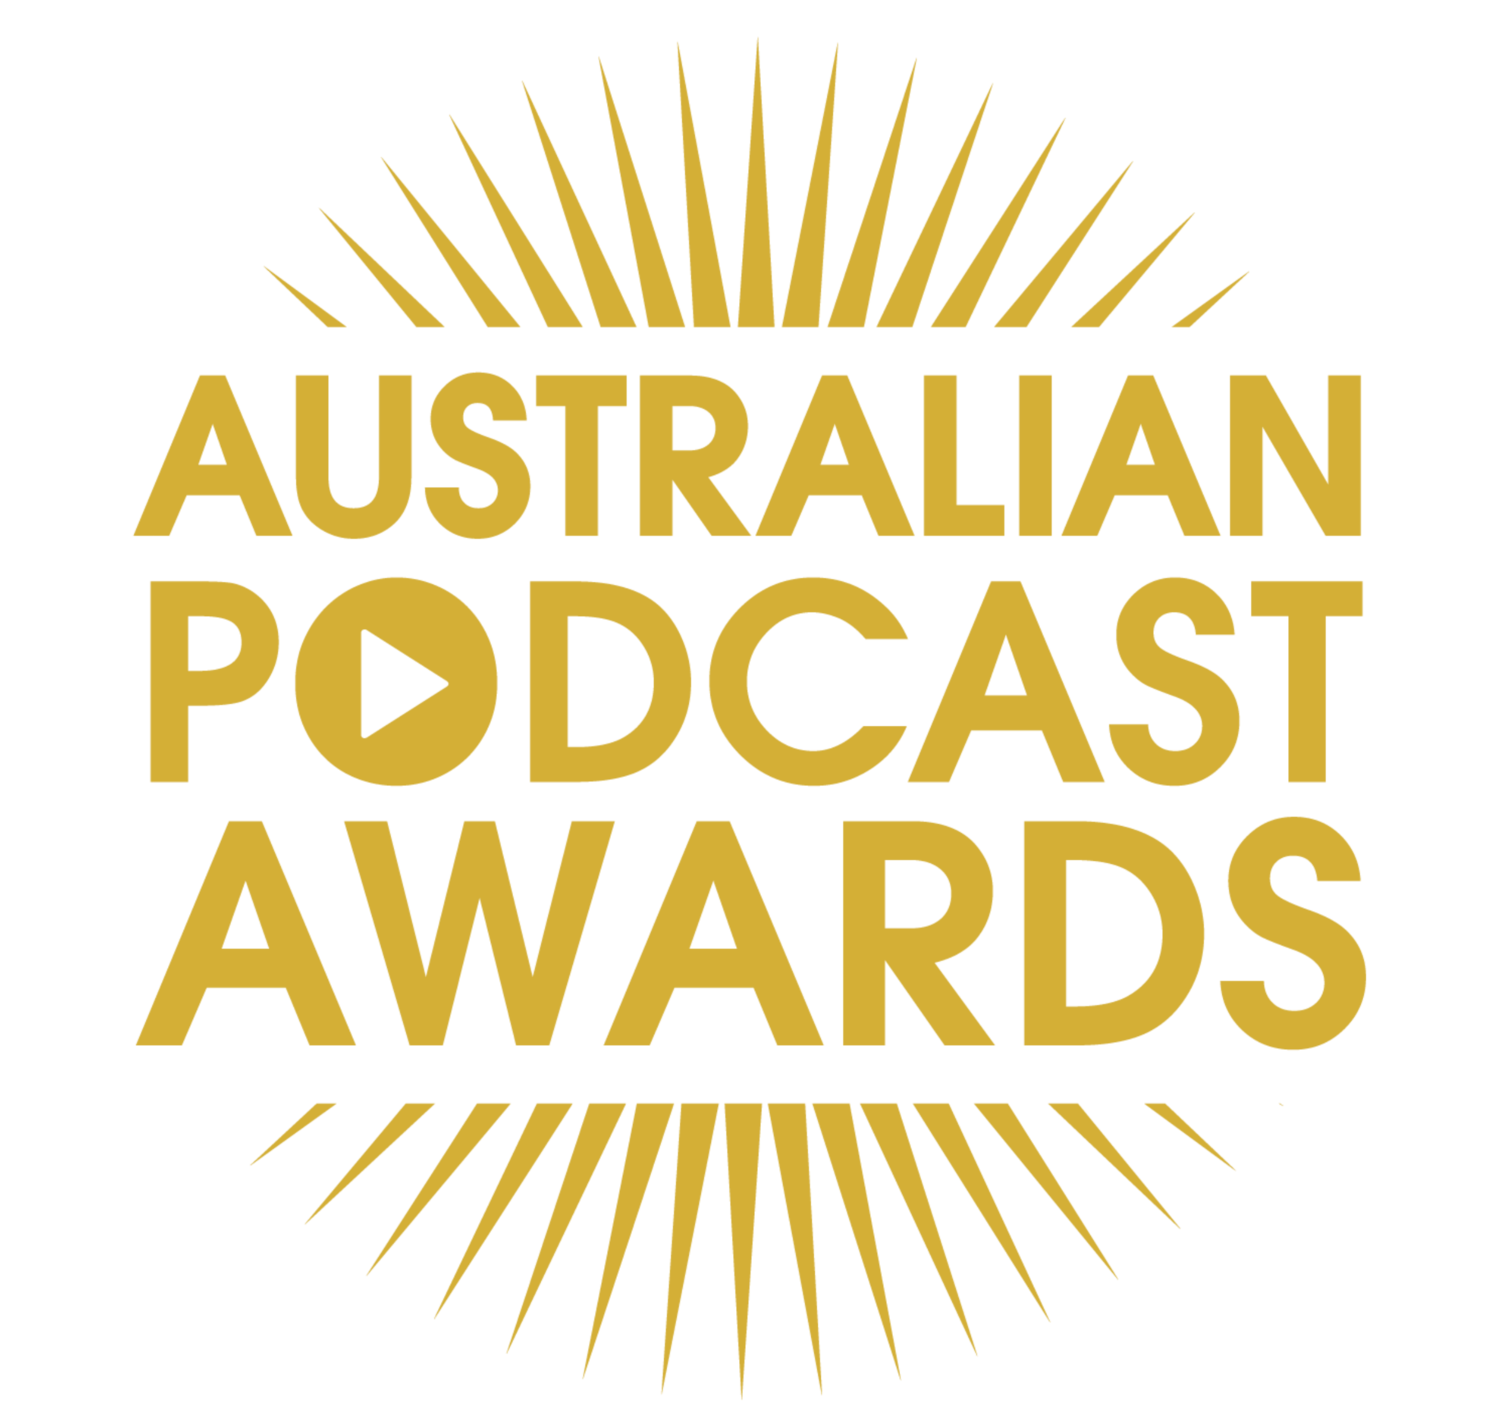 Australian Podcast Awards